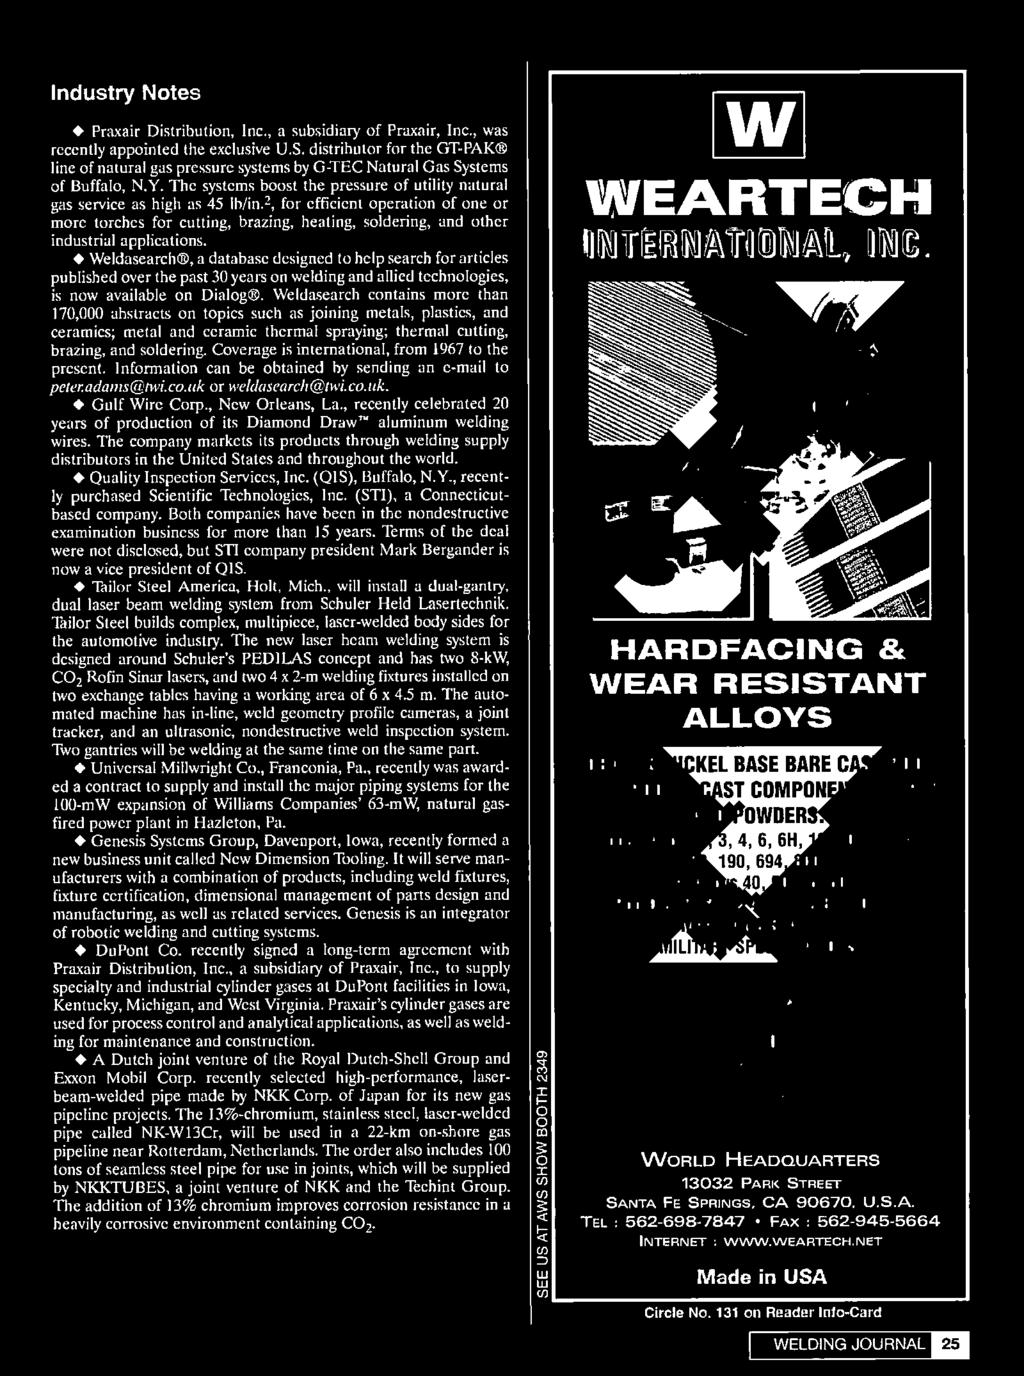 Februa I It Show2002 March 4 7 2002 Mccormick Place South Metal Detector Into A Lrl Long Range Locator Friendly Weldasearch Contains More Than 170000 Abstracts On Topics Such As Joining Metals Plastics And